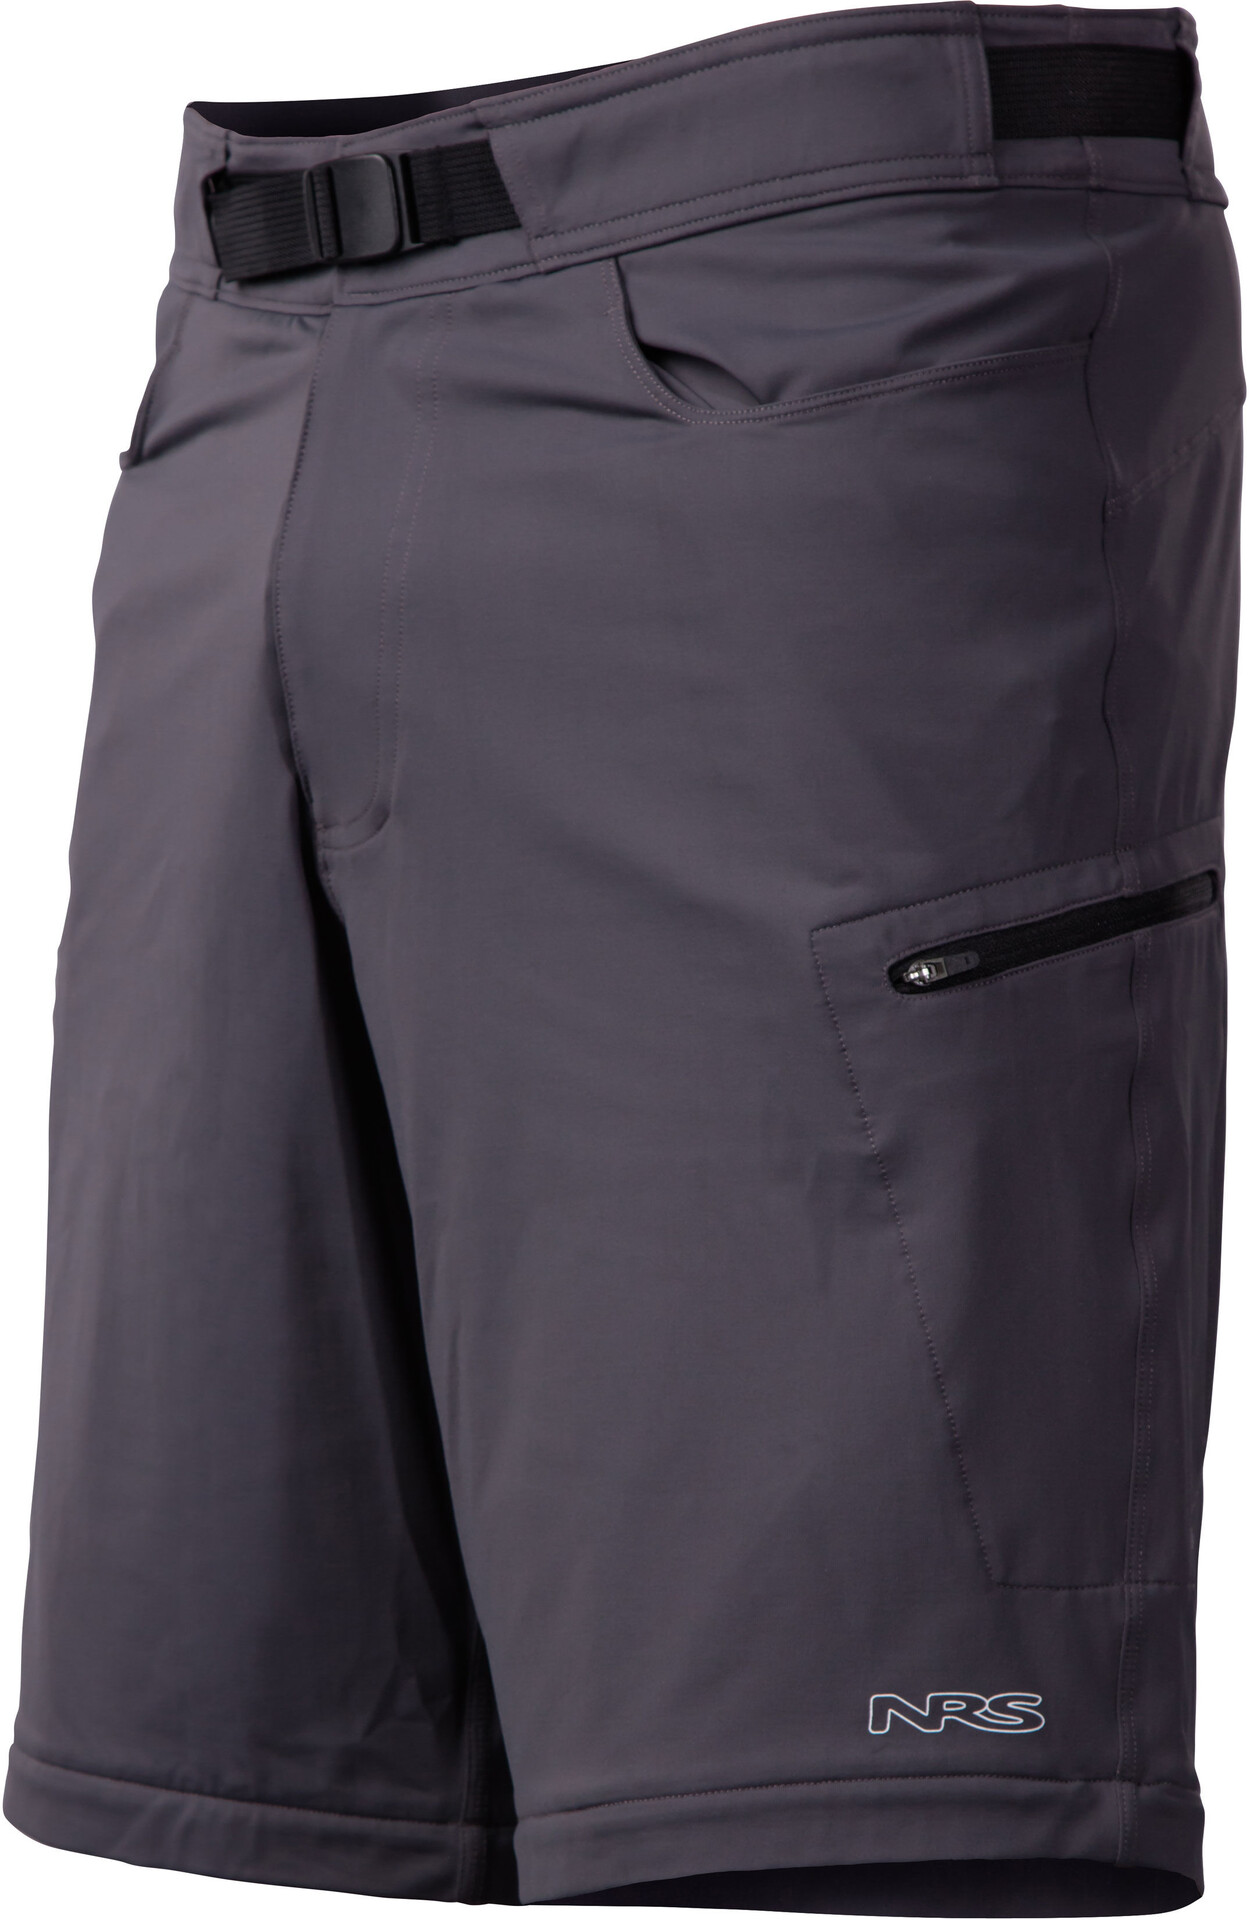 435f20d7fba NRS Mens Guide Shorts Sports & Outdoors